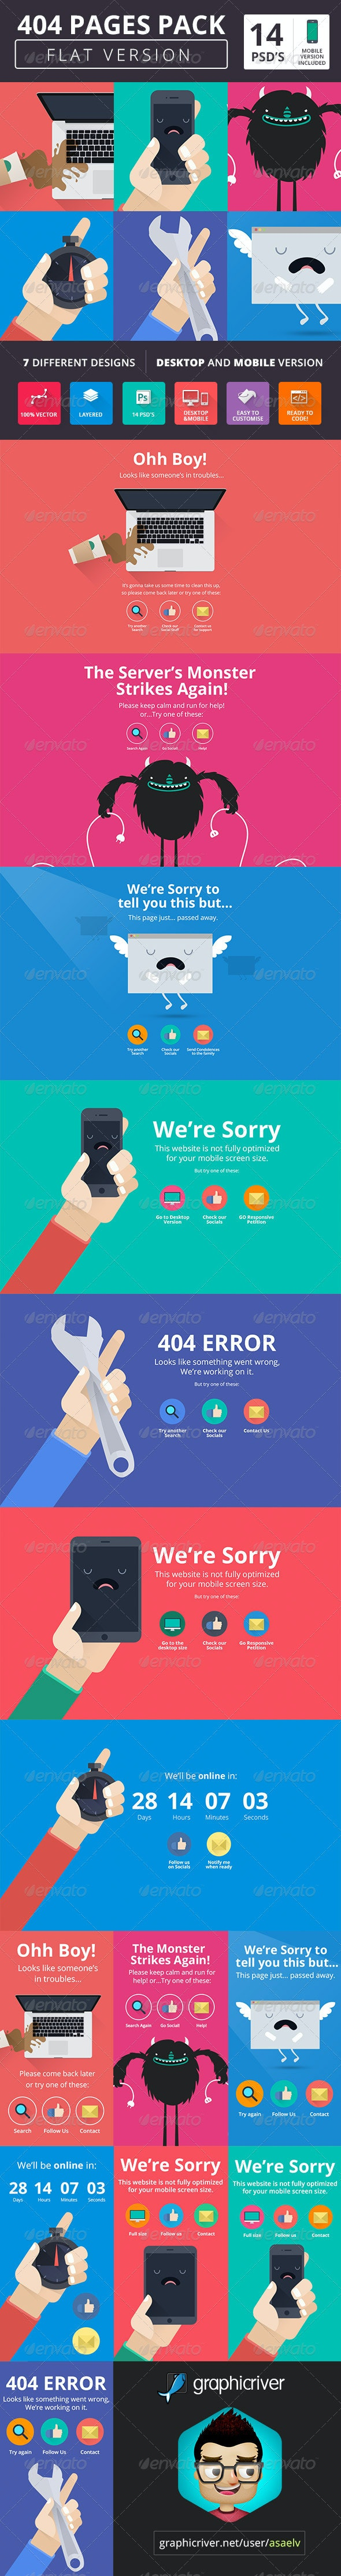 404 Pack Flat Style - 404 Pages Web Elements